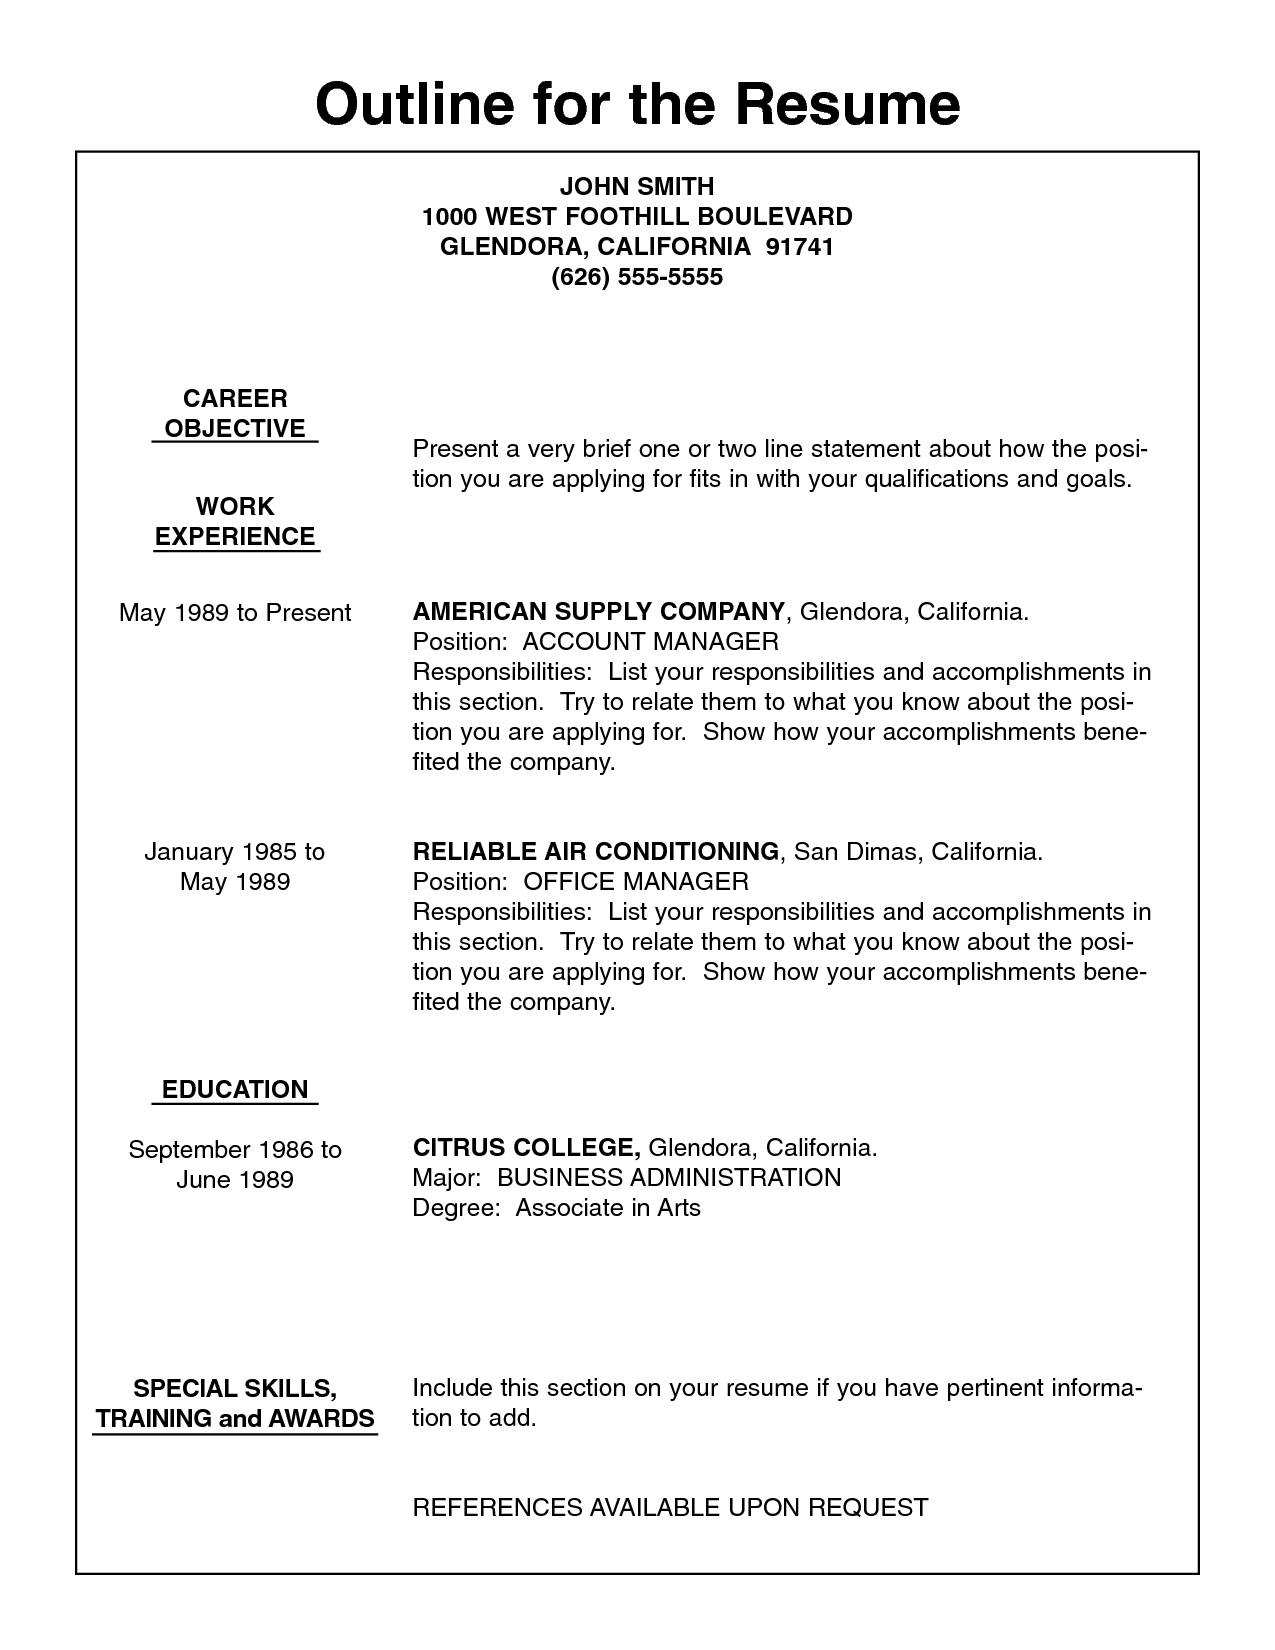 Resume Outline Example Resume Example Outline Worksheet Templates Writing Worksheets